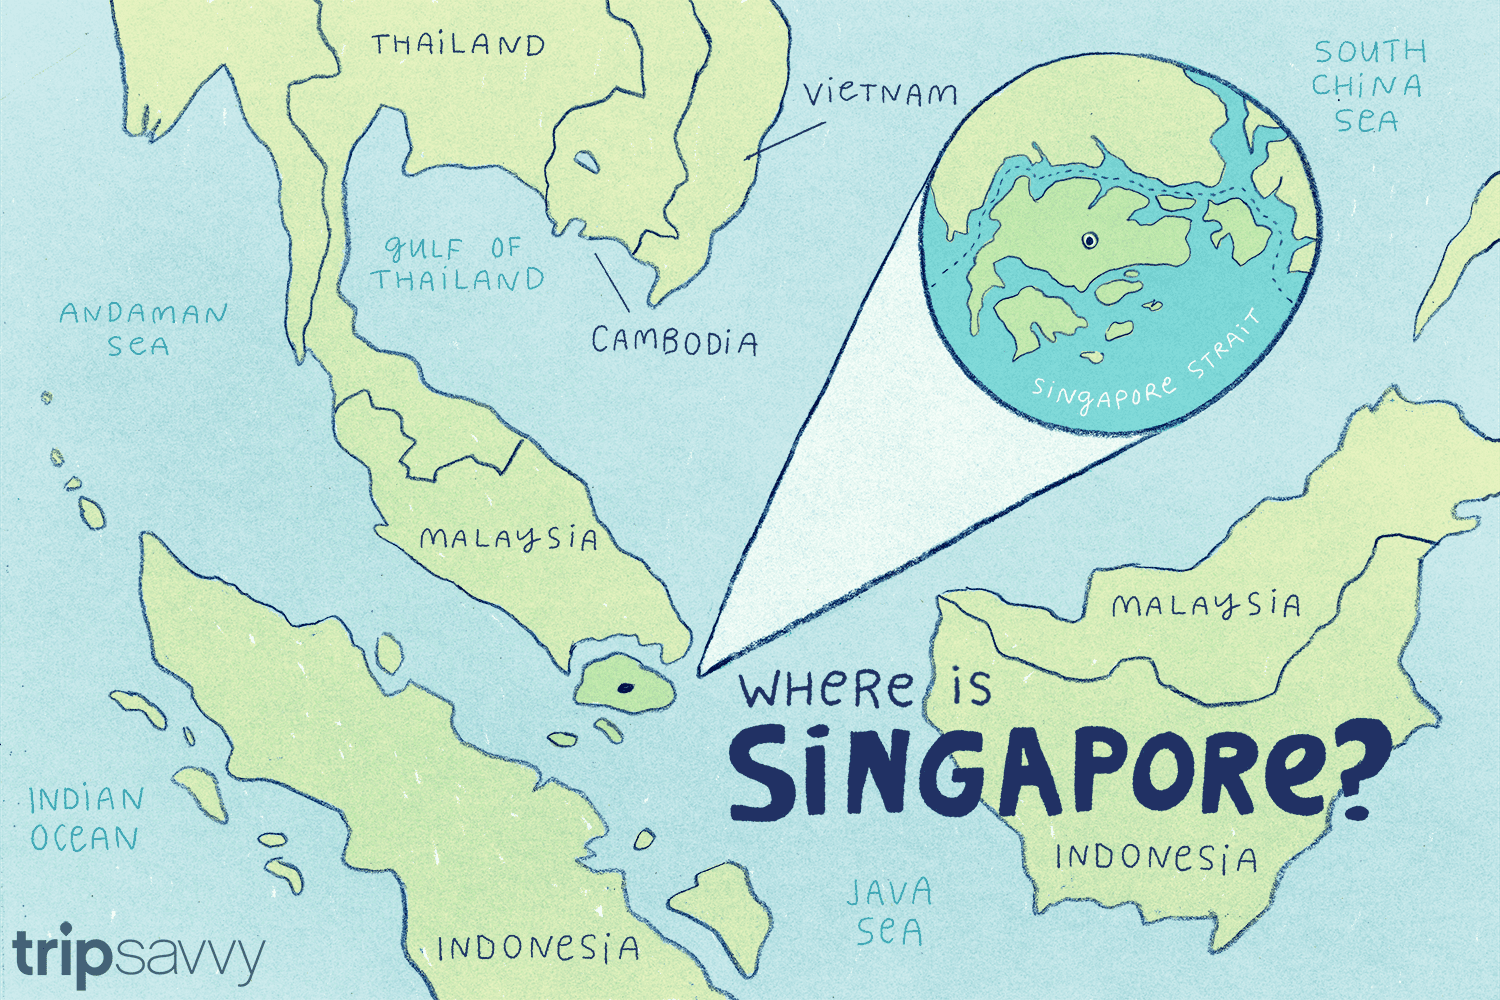 Singapore On World Map Where Is Singapore: Is It a City, Island, or Country?